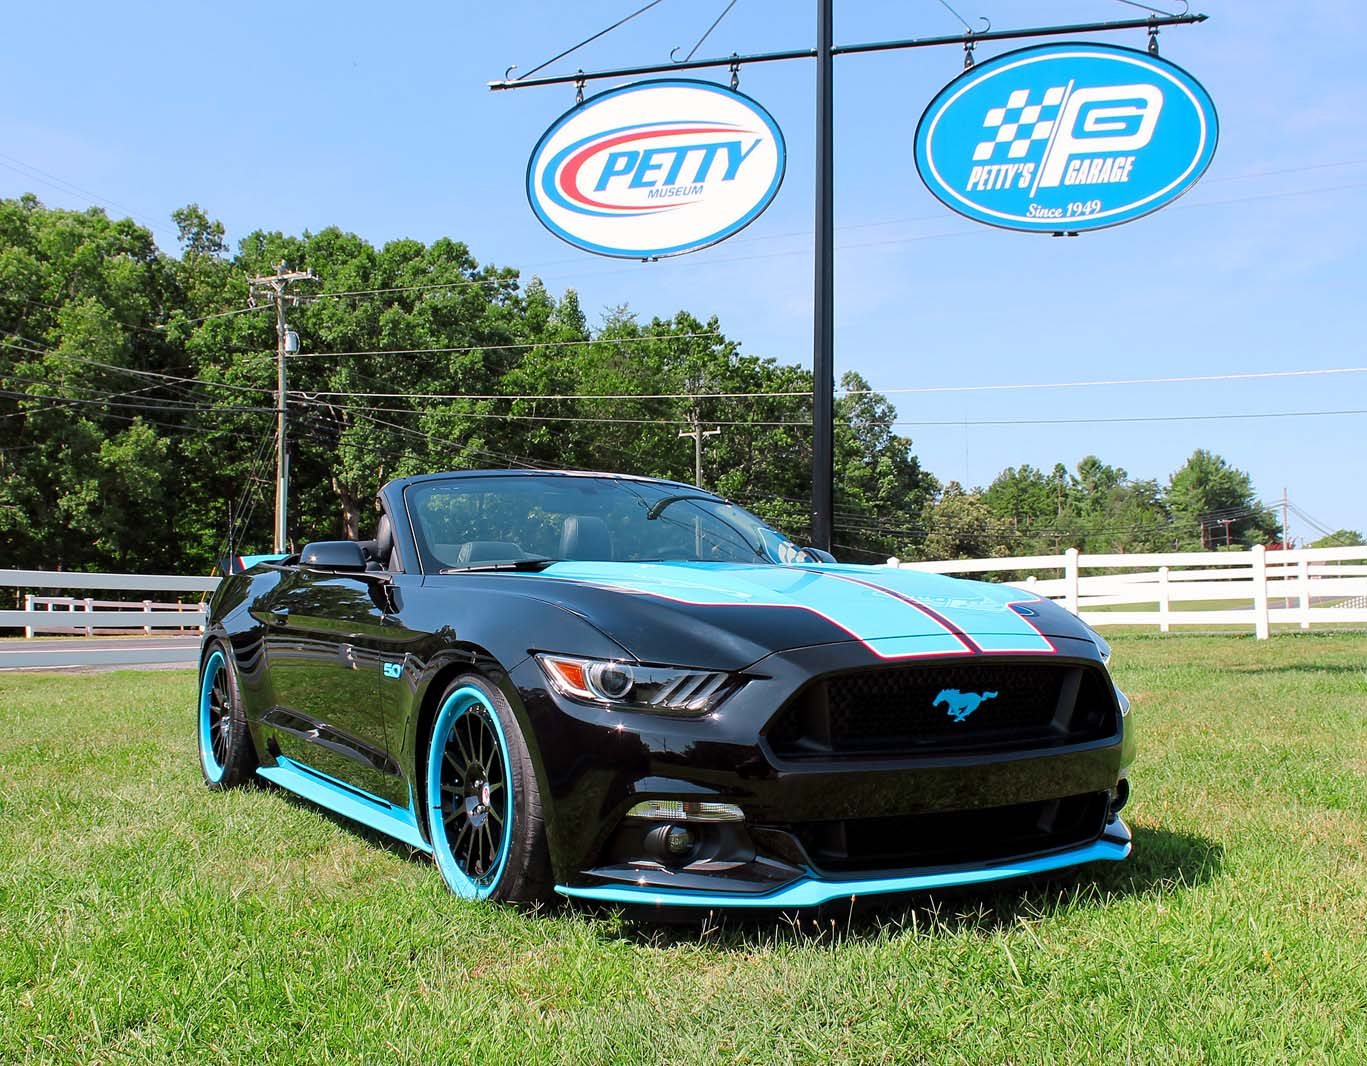 New petty 39 s garage mustang gt king edition boasts up to 727 hp for Garage gt auto